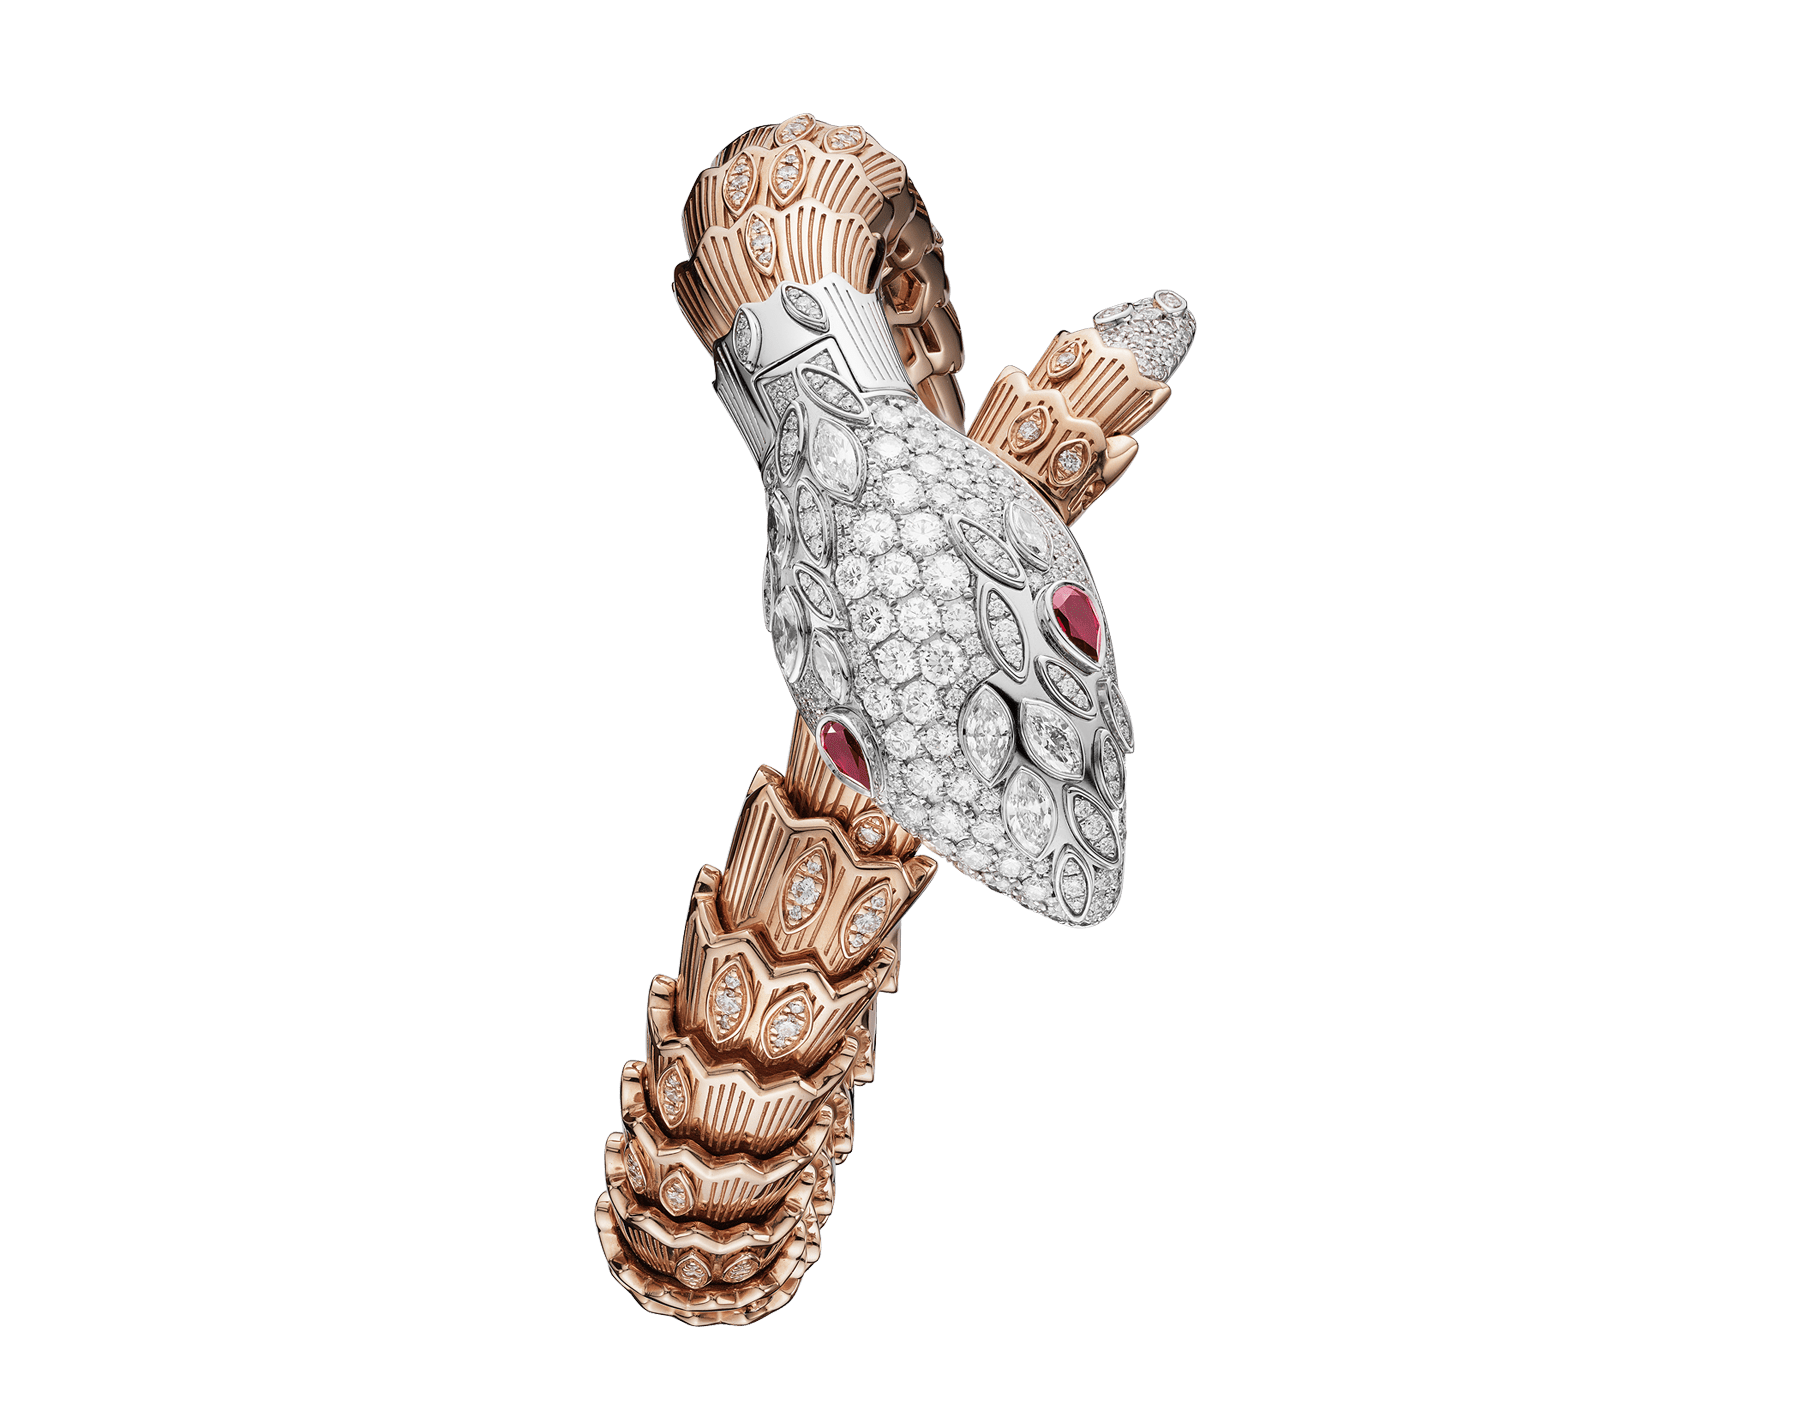 Montre secrète Serpenti avec tête en or blanc 18 K sertie de diamants taille brillant et marquise et yeux en rubis, boîtier en or blanc 18 K, cadran en or blanc 18 K serti de diamants taille brillant, bracelet une spirale en or rose et or blanc 18 K serti de diamants taille brillant. 102239 image 1